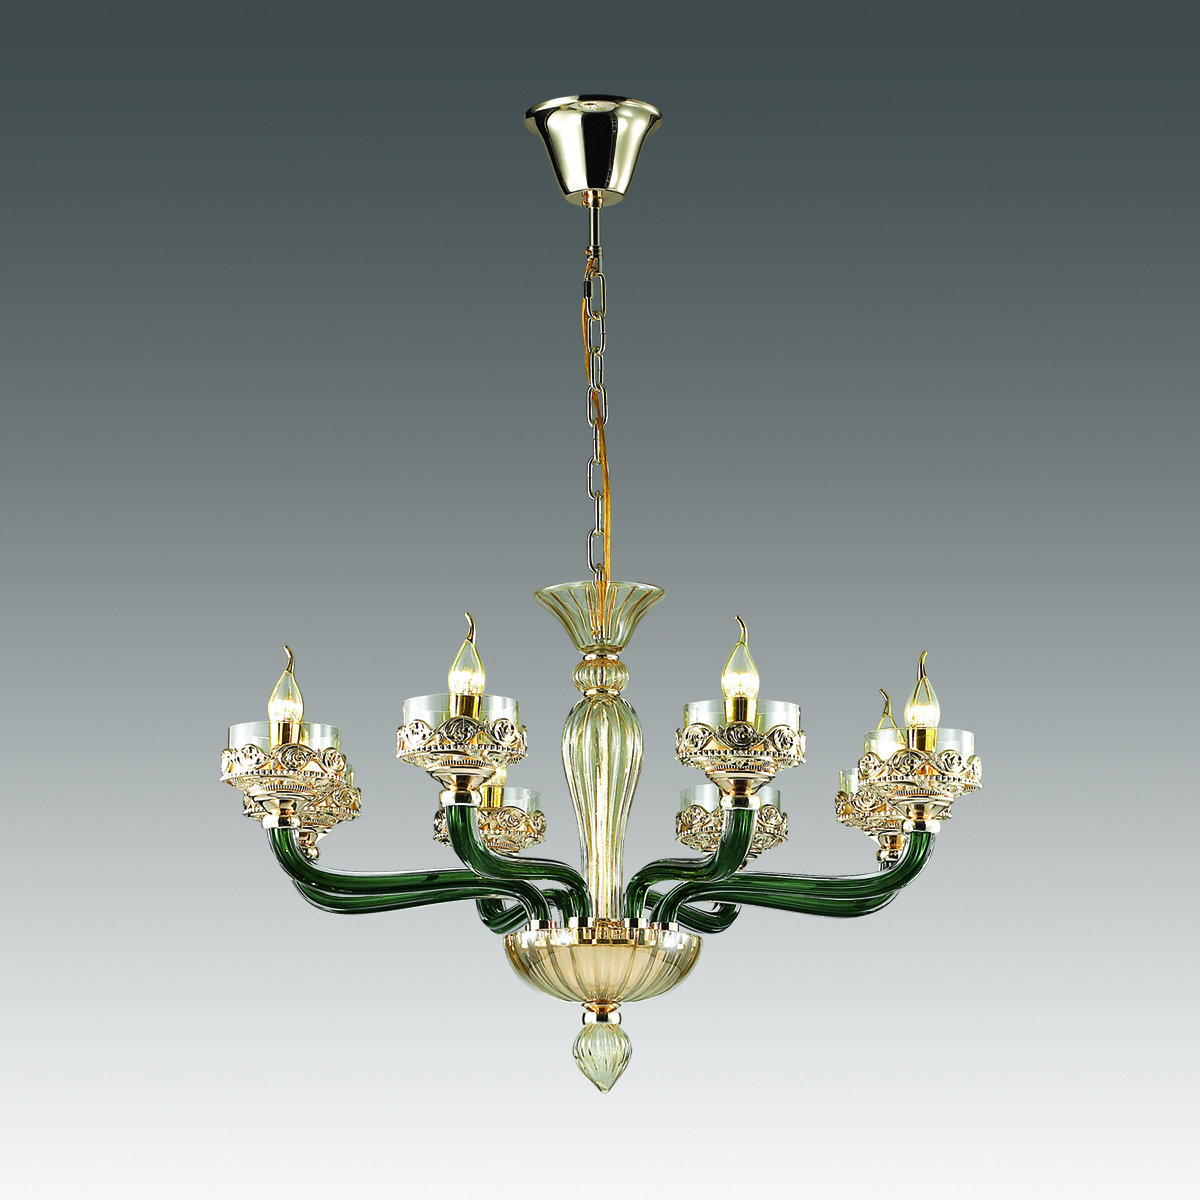 Люстра ODEON LIGHT арт. 4001/8